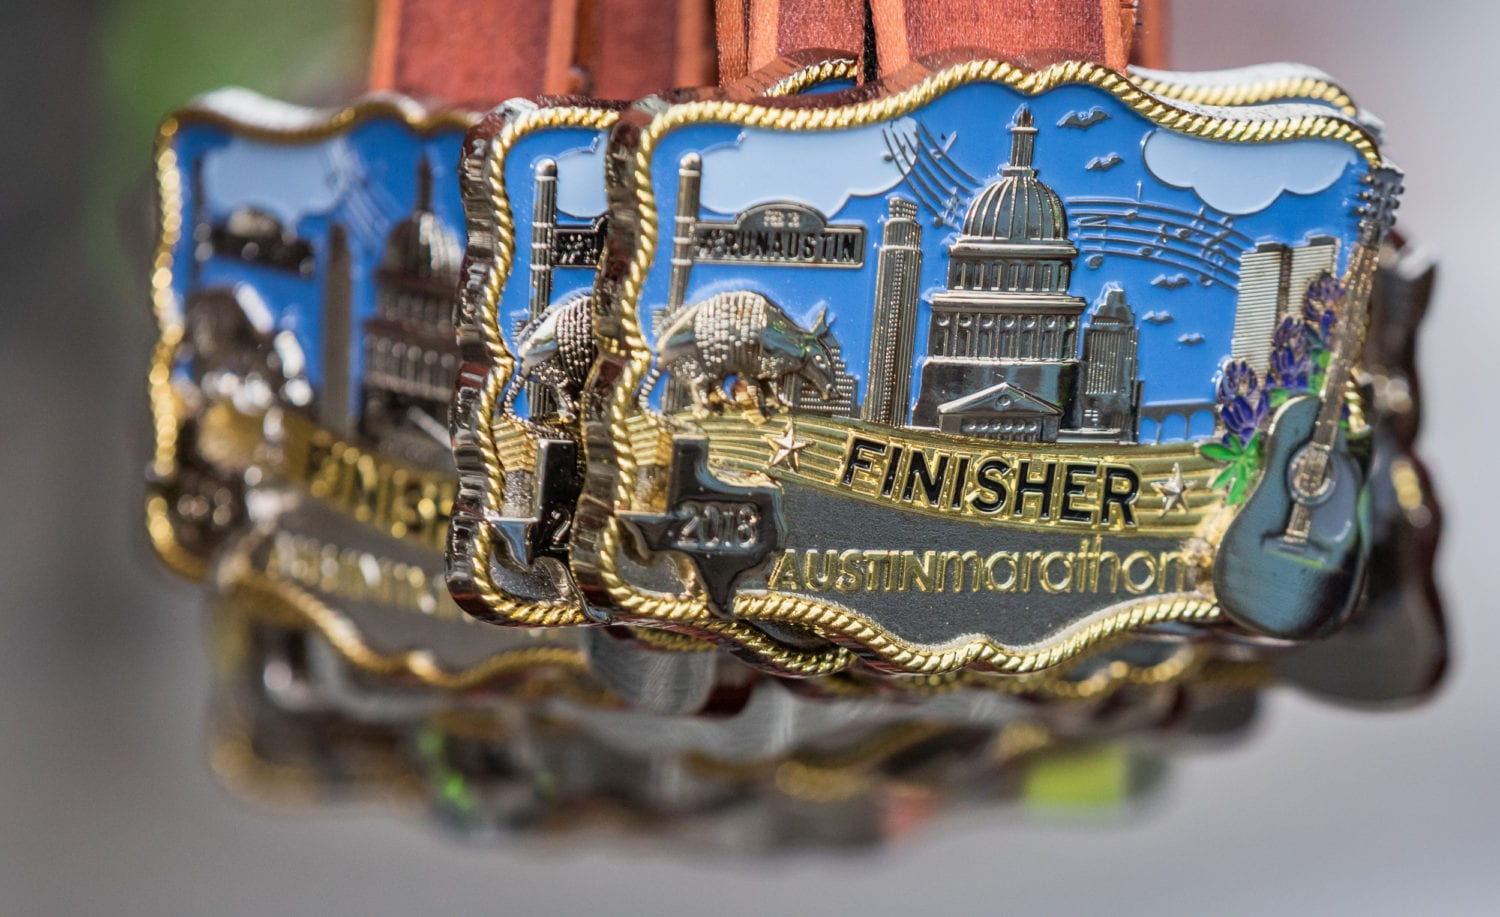 belt buckle finisher medals: perks of the 2019 Austin Marathon